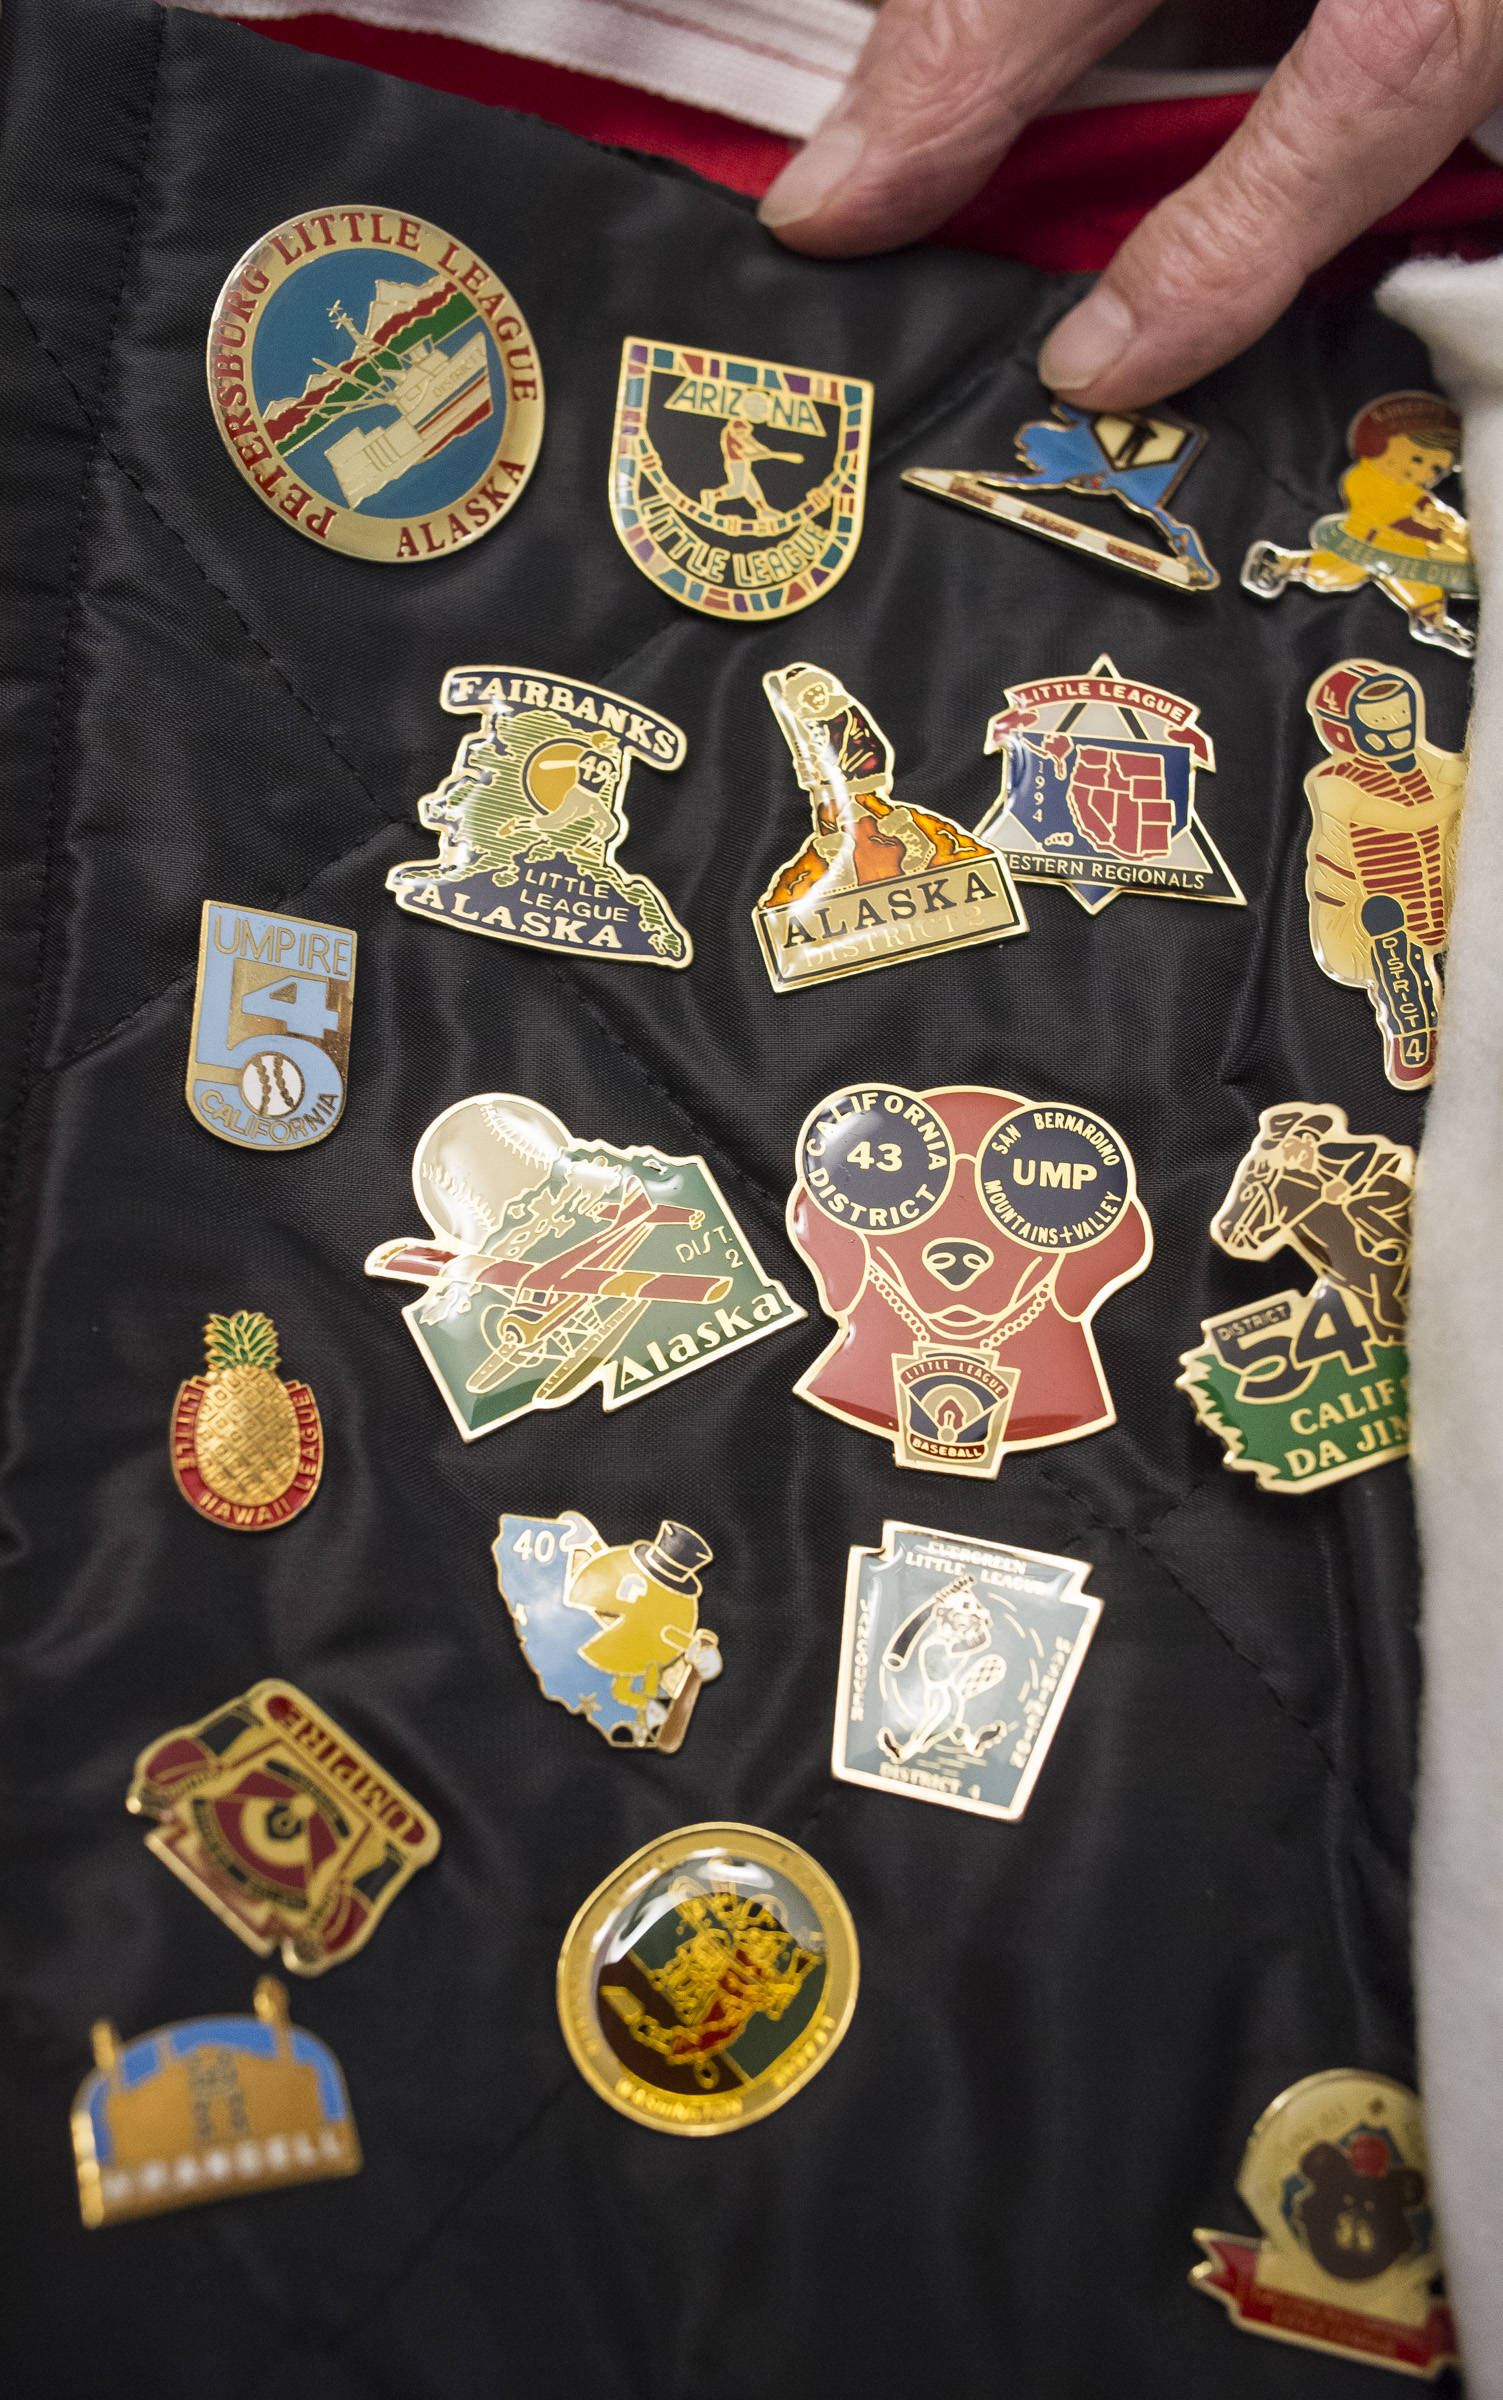 Tom Karpstein, 70, show a portion of his collection of baseball tournament pins as he talks Thursday, August 2, 2018, about his long baseball umpiring role in Juneau. (Michael Penn | Juneau Empire)